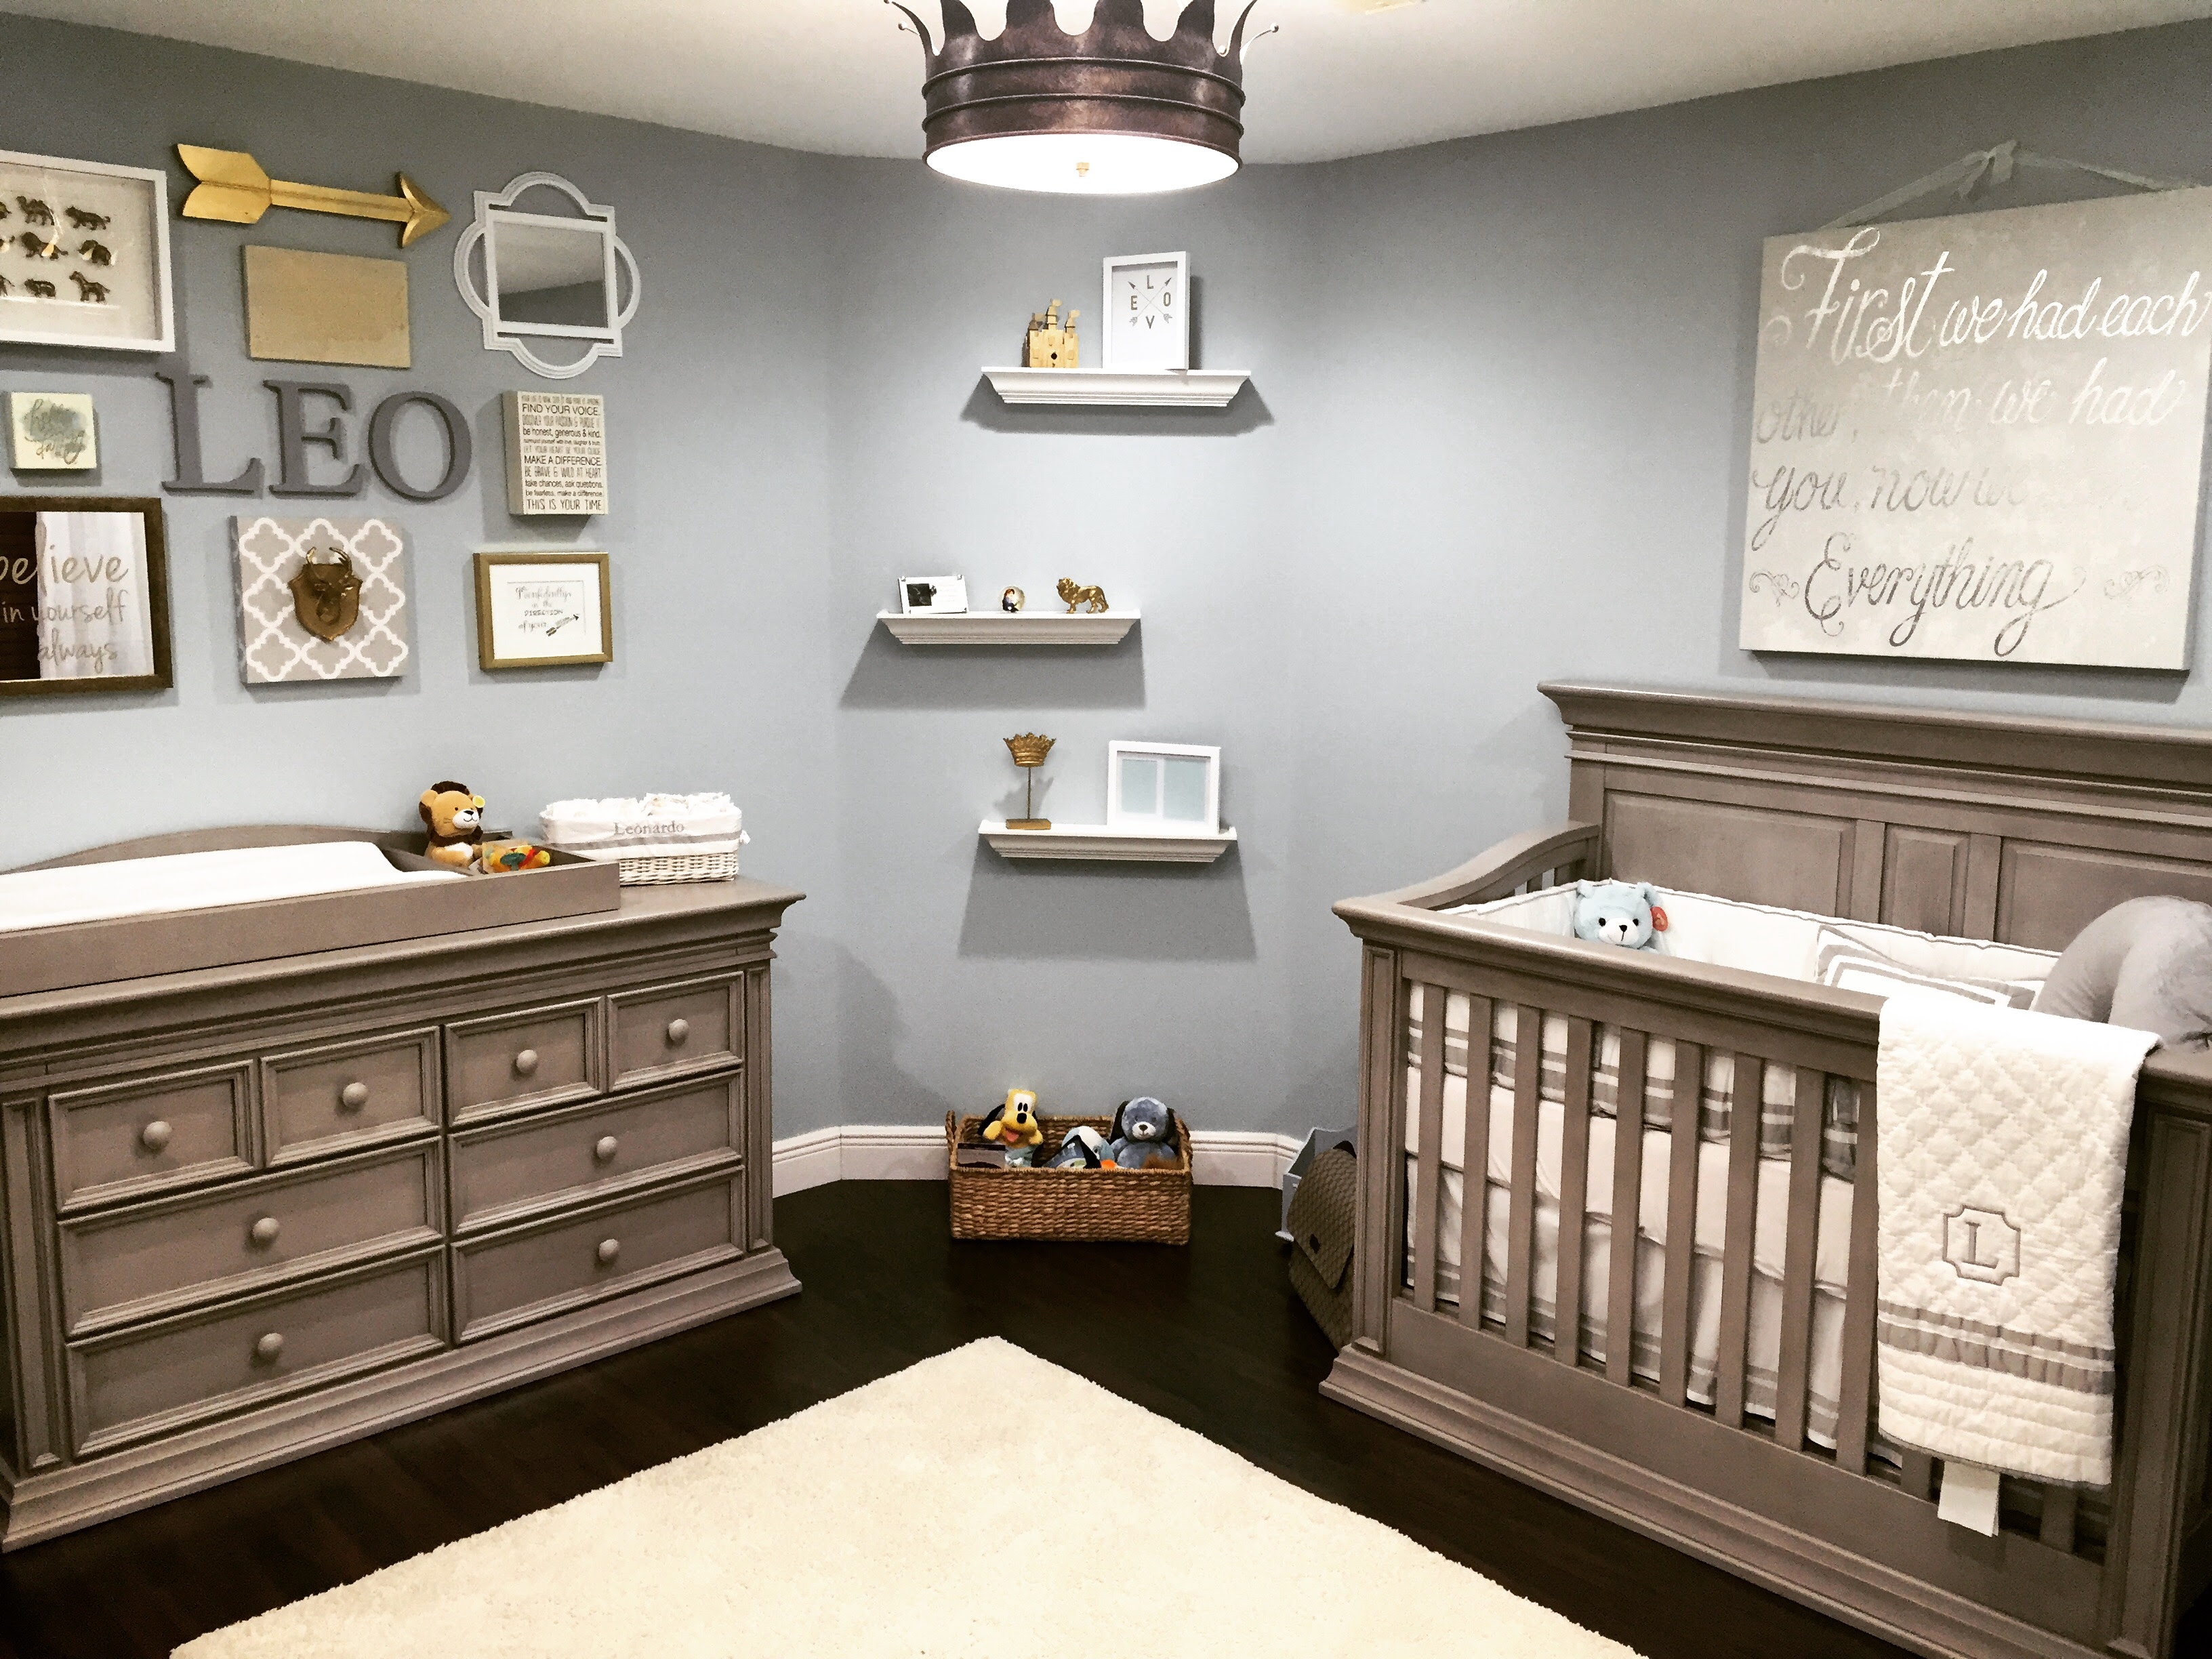 Little Leo's Nursery fit for a King - Project Nursery